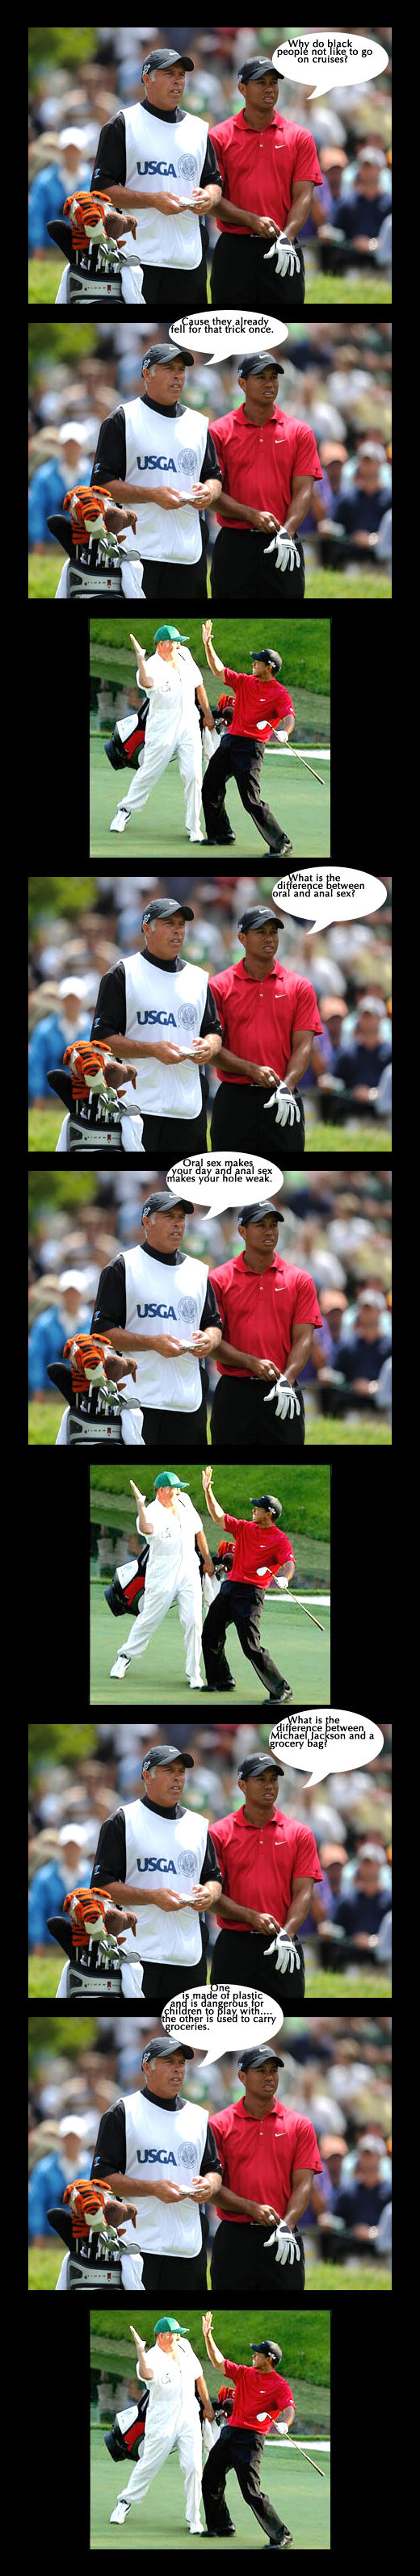 Tiger talks. Ah, if golf were only this interesting to watch.. Ili! i' legiit, isms? y. 4 . arena: tween rat and anal: -21:? ml sex gates but is he i 'iall twee